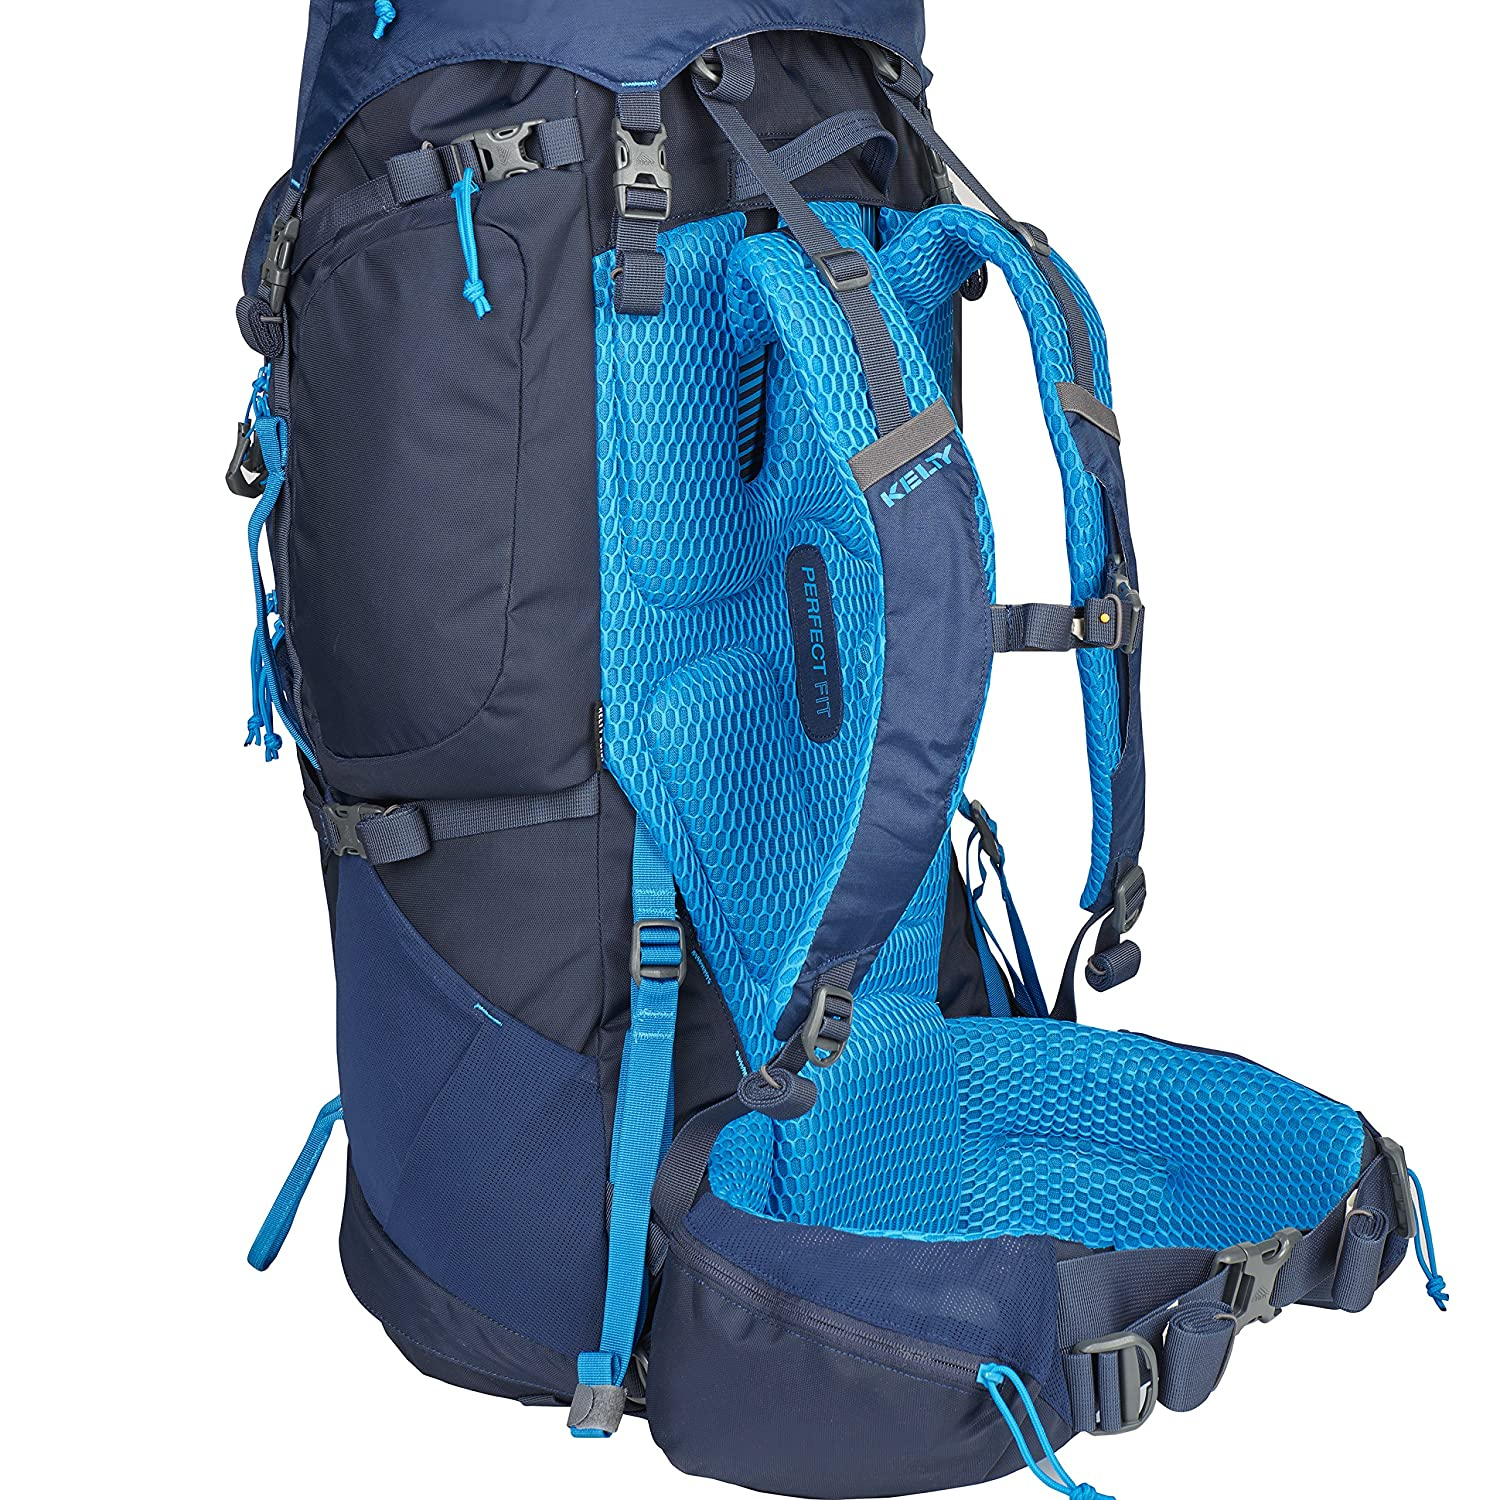 d9afe2a06a1 Kelty Coyote 65 Hiking Backpack